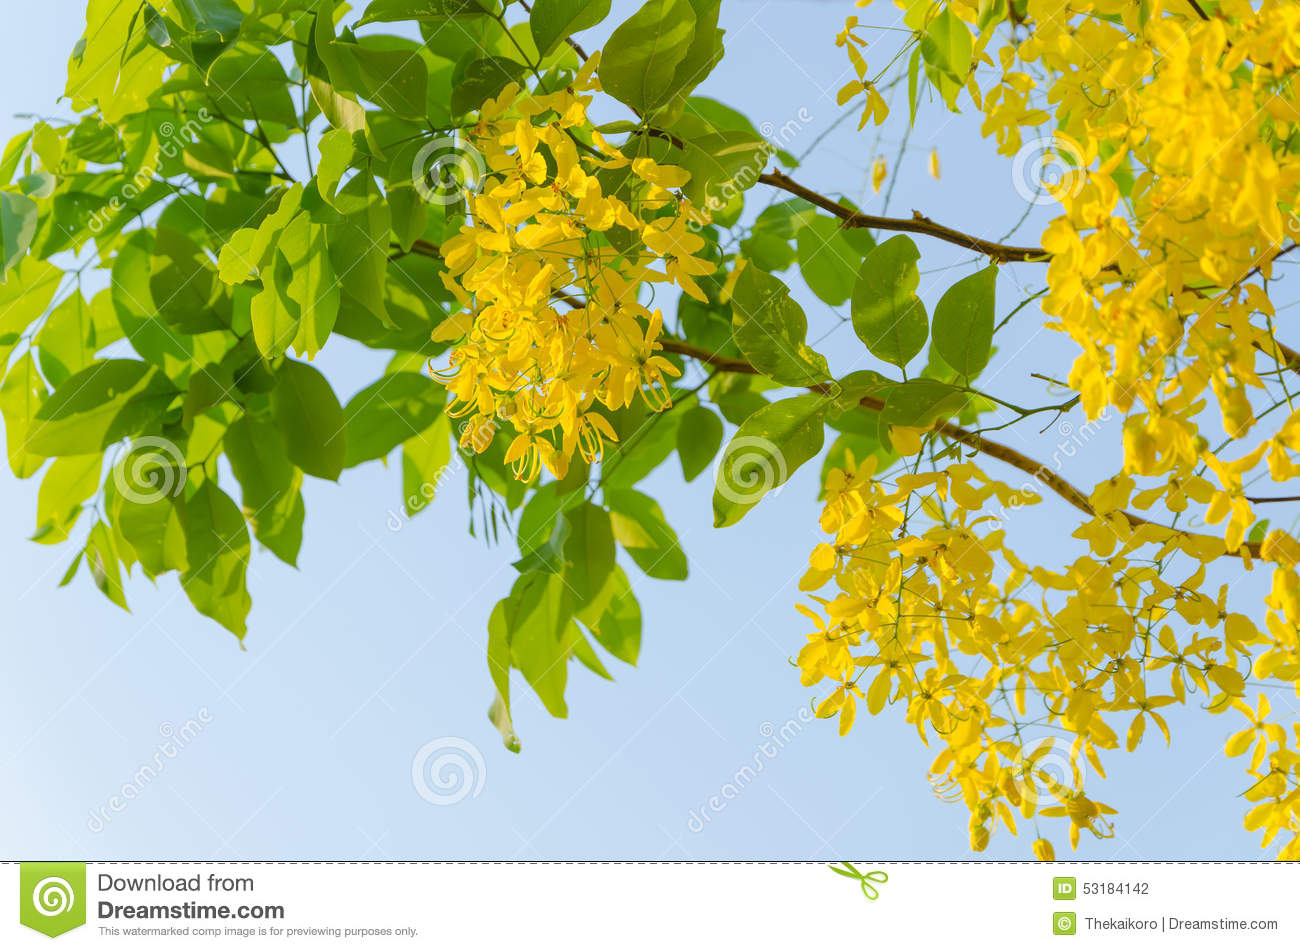 Golden shower tree beautiful yellow flower stock photo image of golden shower tree beautiful yellow flower nature abstract mightylinksfo